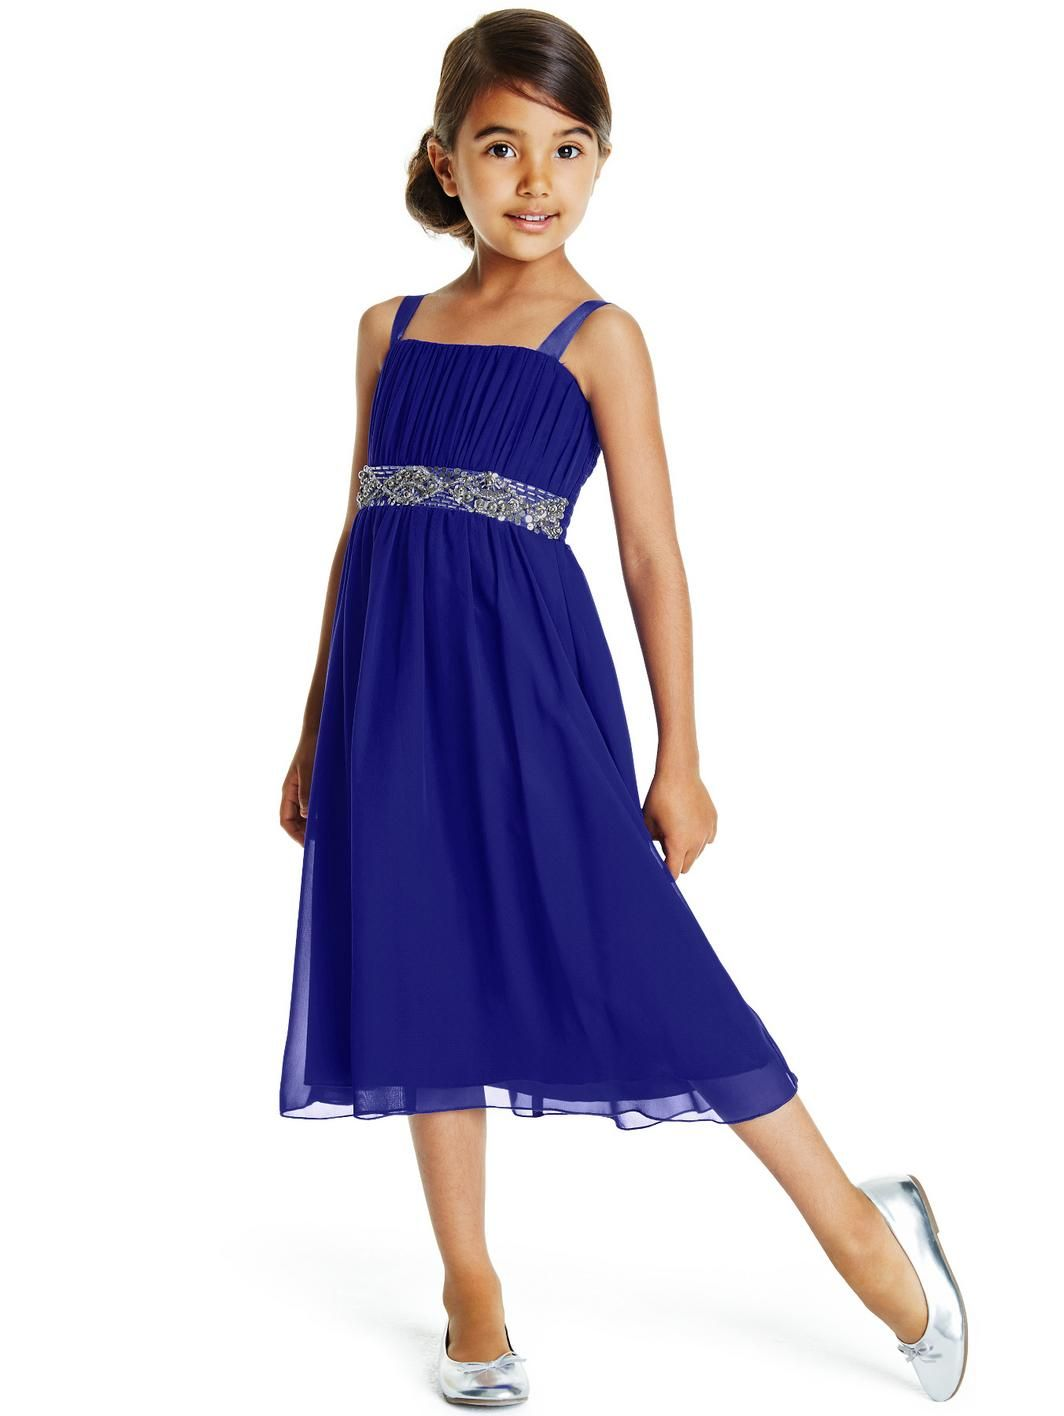 For my beautiful bridesmaid http://www.littlewoods.com/little ...